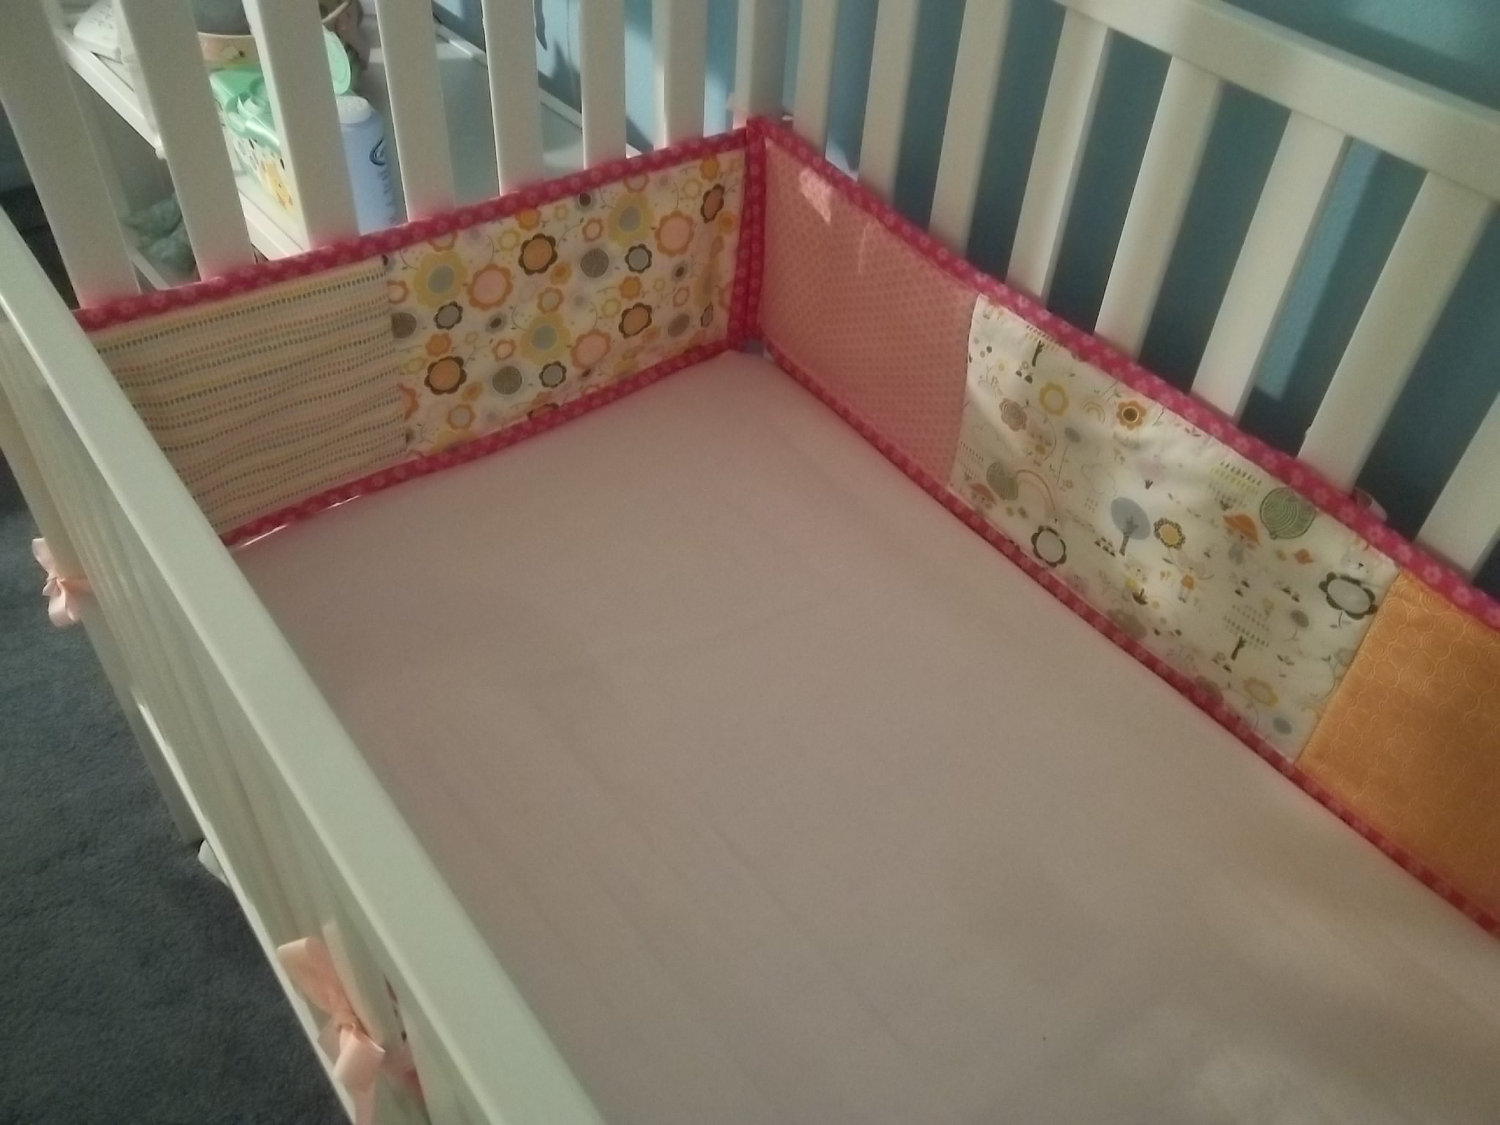 Crib Bumpers | What to Use Instead of Crib Bumpers | Portable Crib Bumper